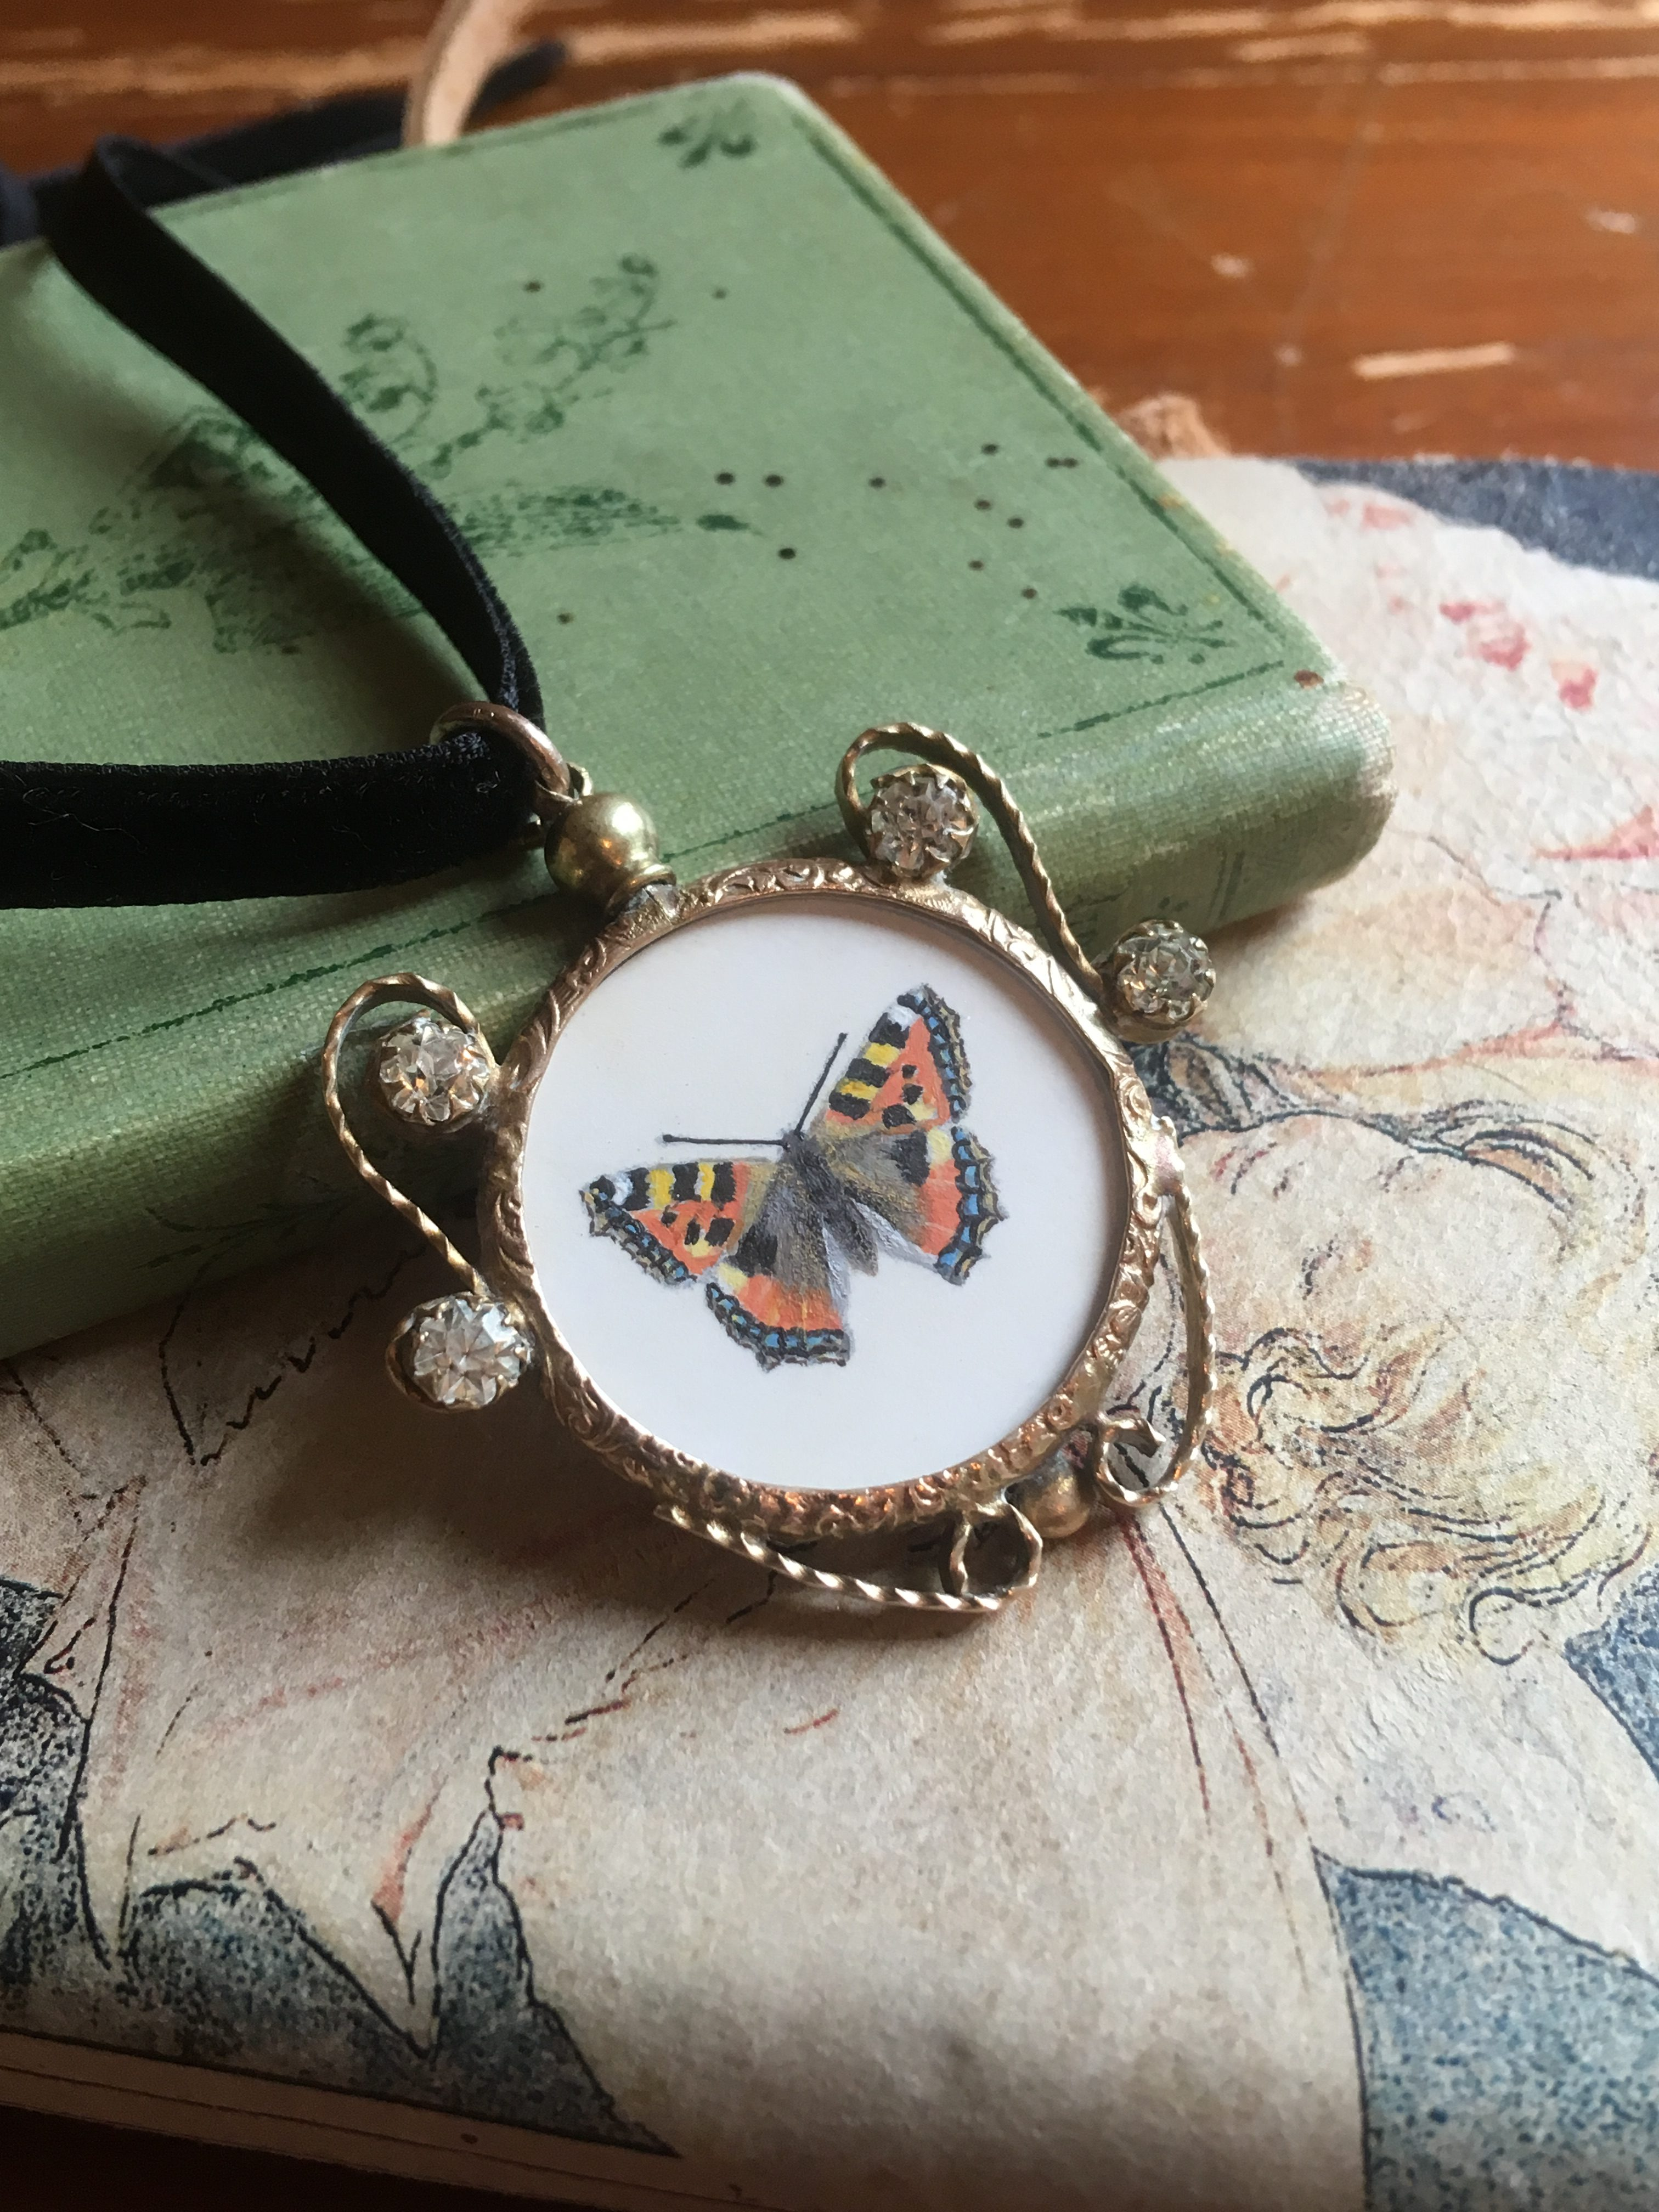 Small Tortoiseshell Butterfly - hand-painted Victorian style pendant